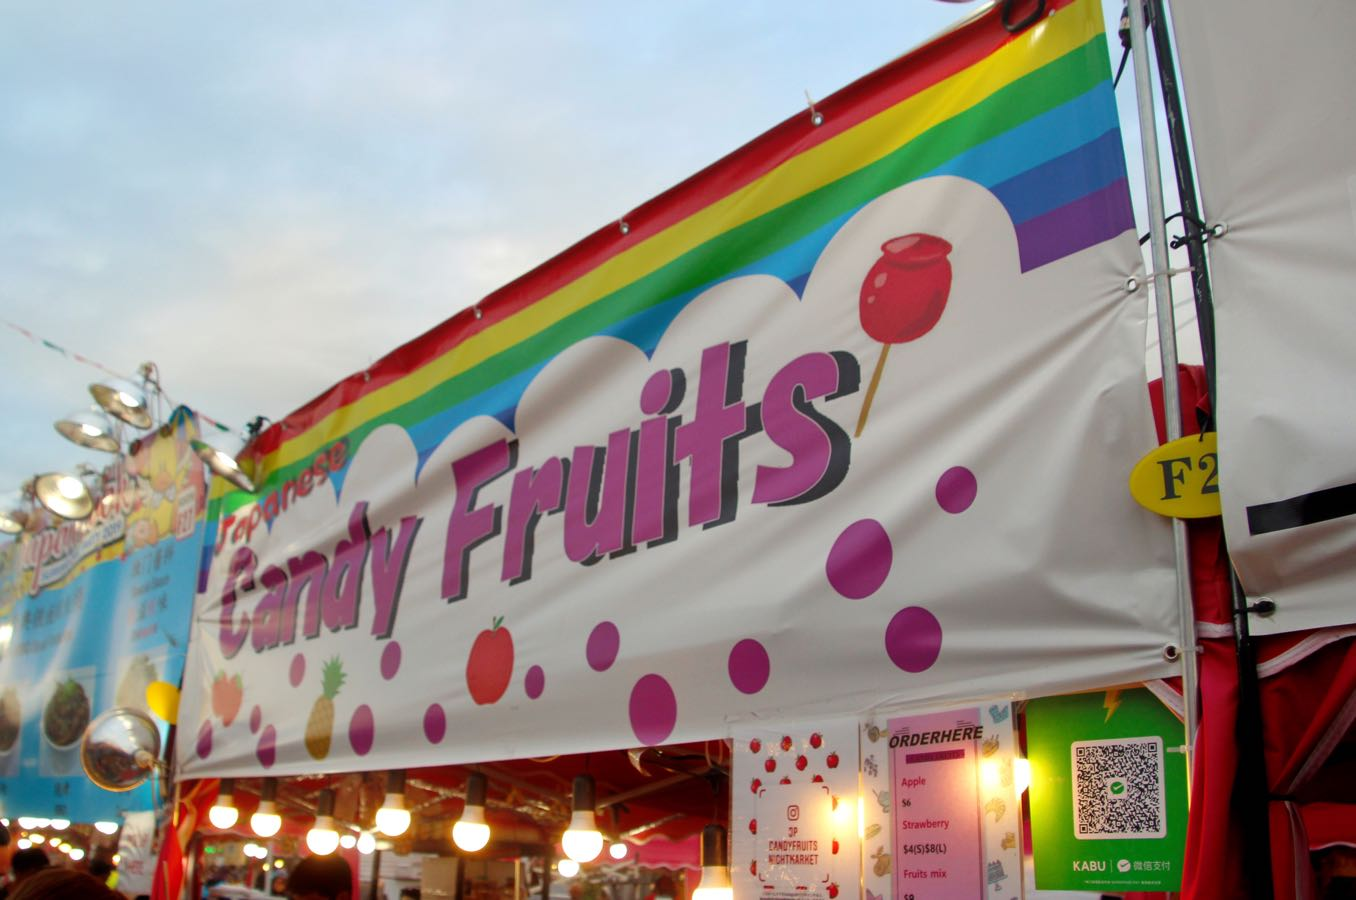 「Candy Fruits」という店